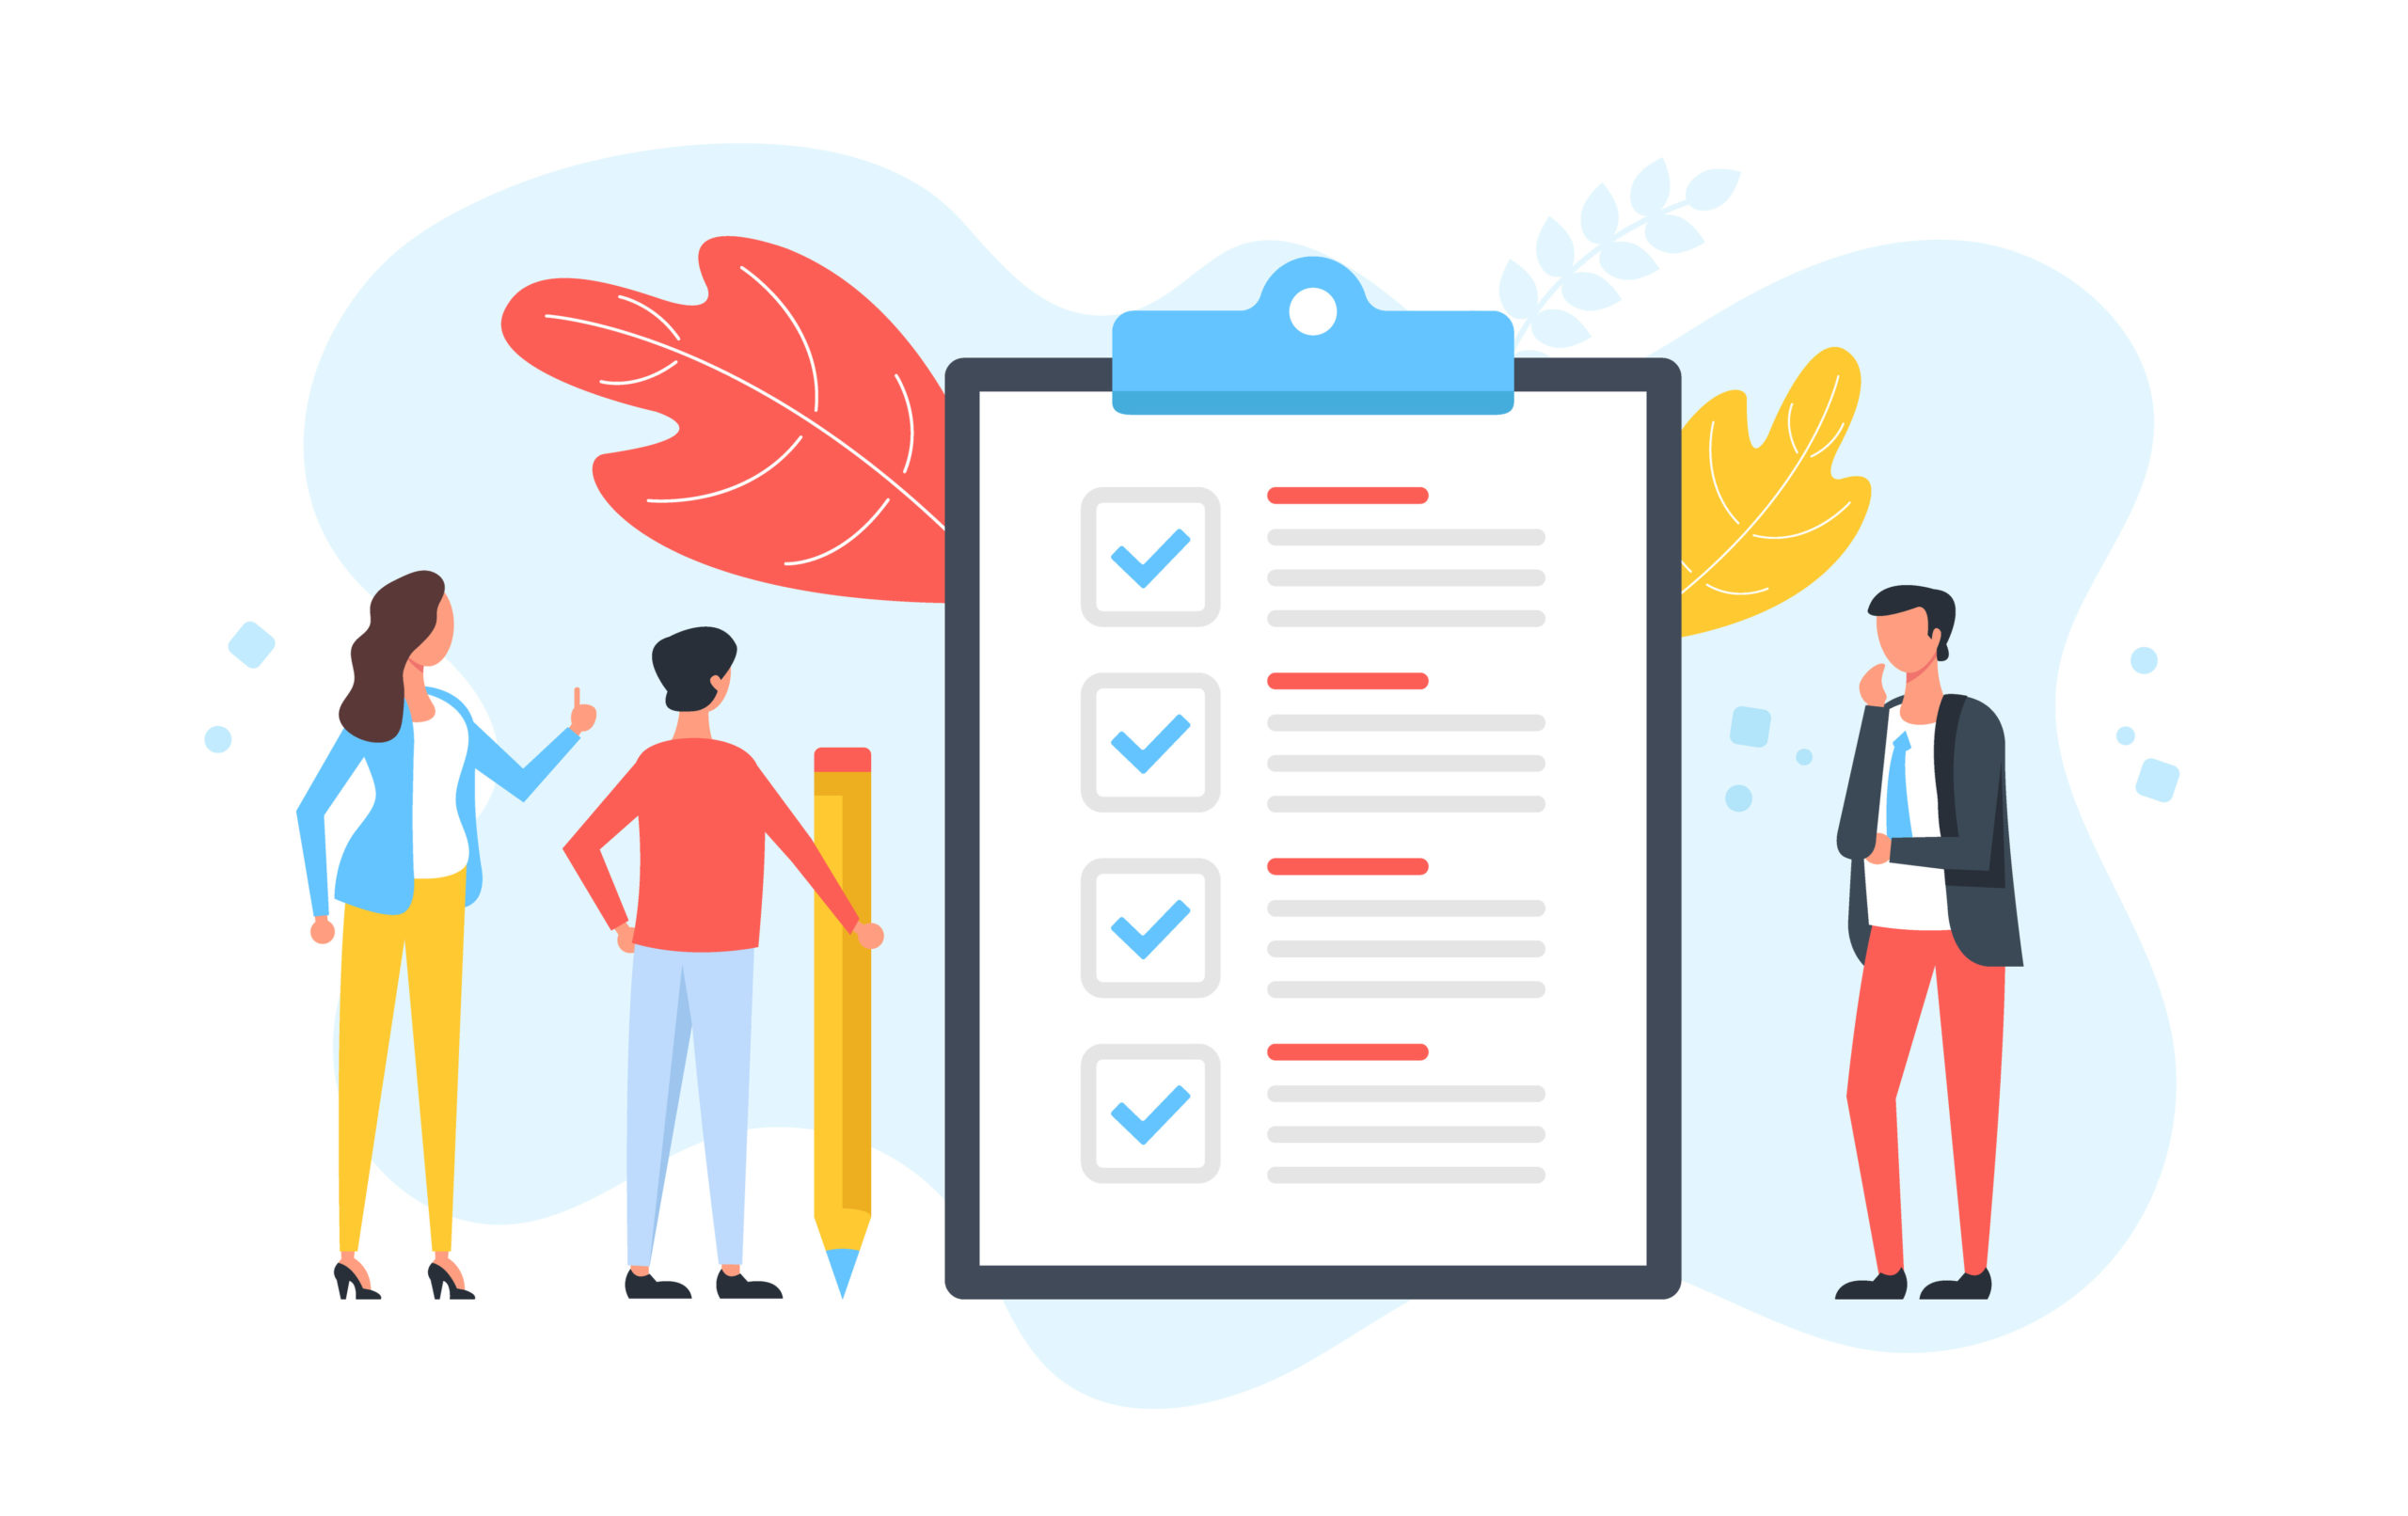 hecklist. Group of people and clipboard with check list and checkmarks. Business plan, marketing strategy, survey, complete tasks, teamwork success concepts. Modern flat design. Vector illustration